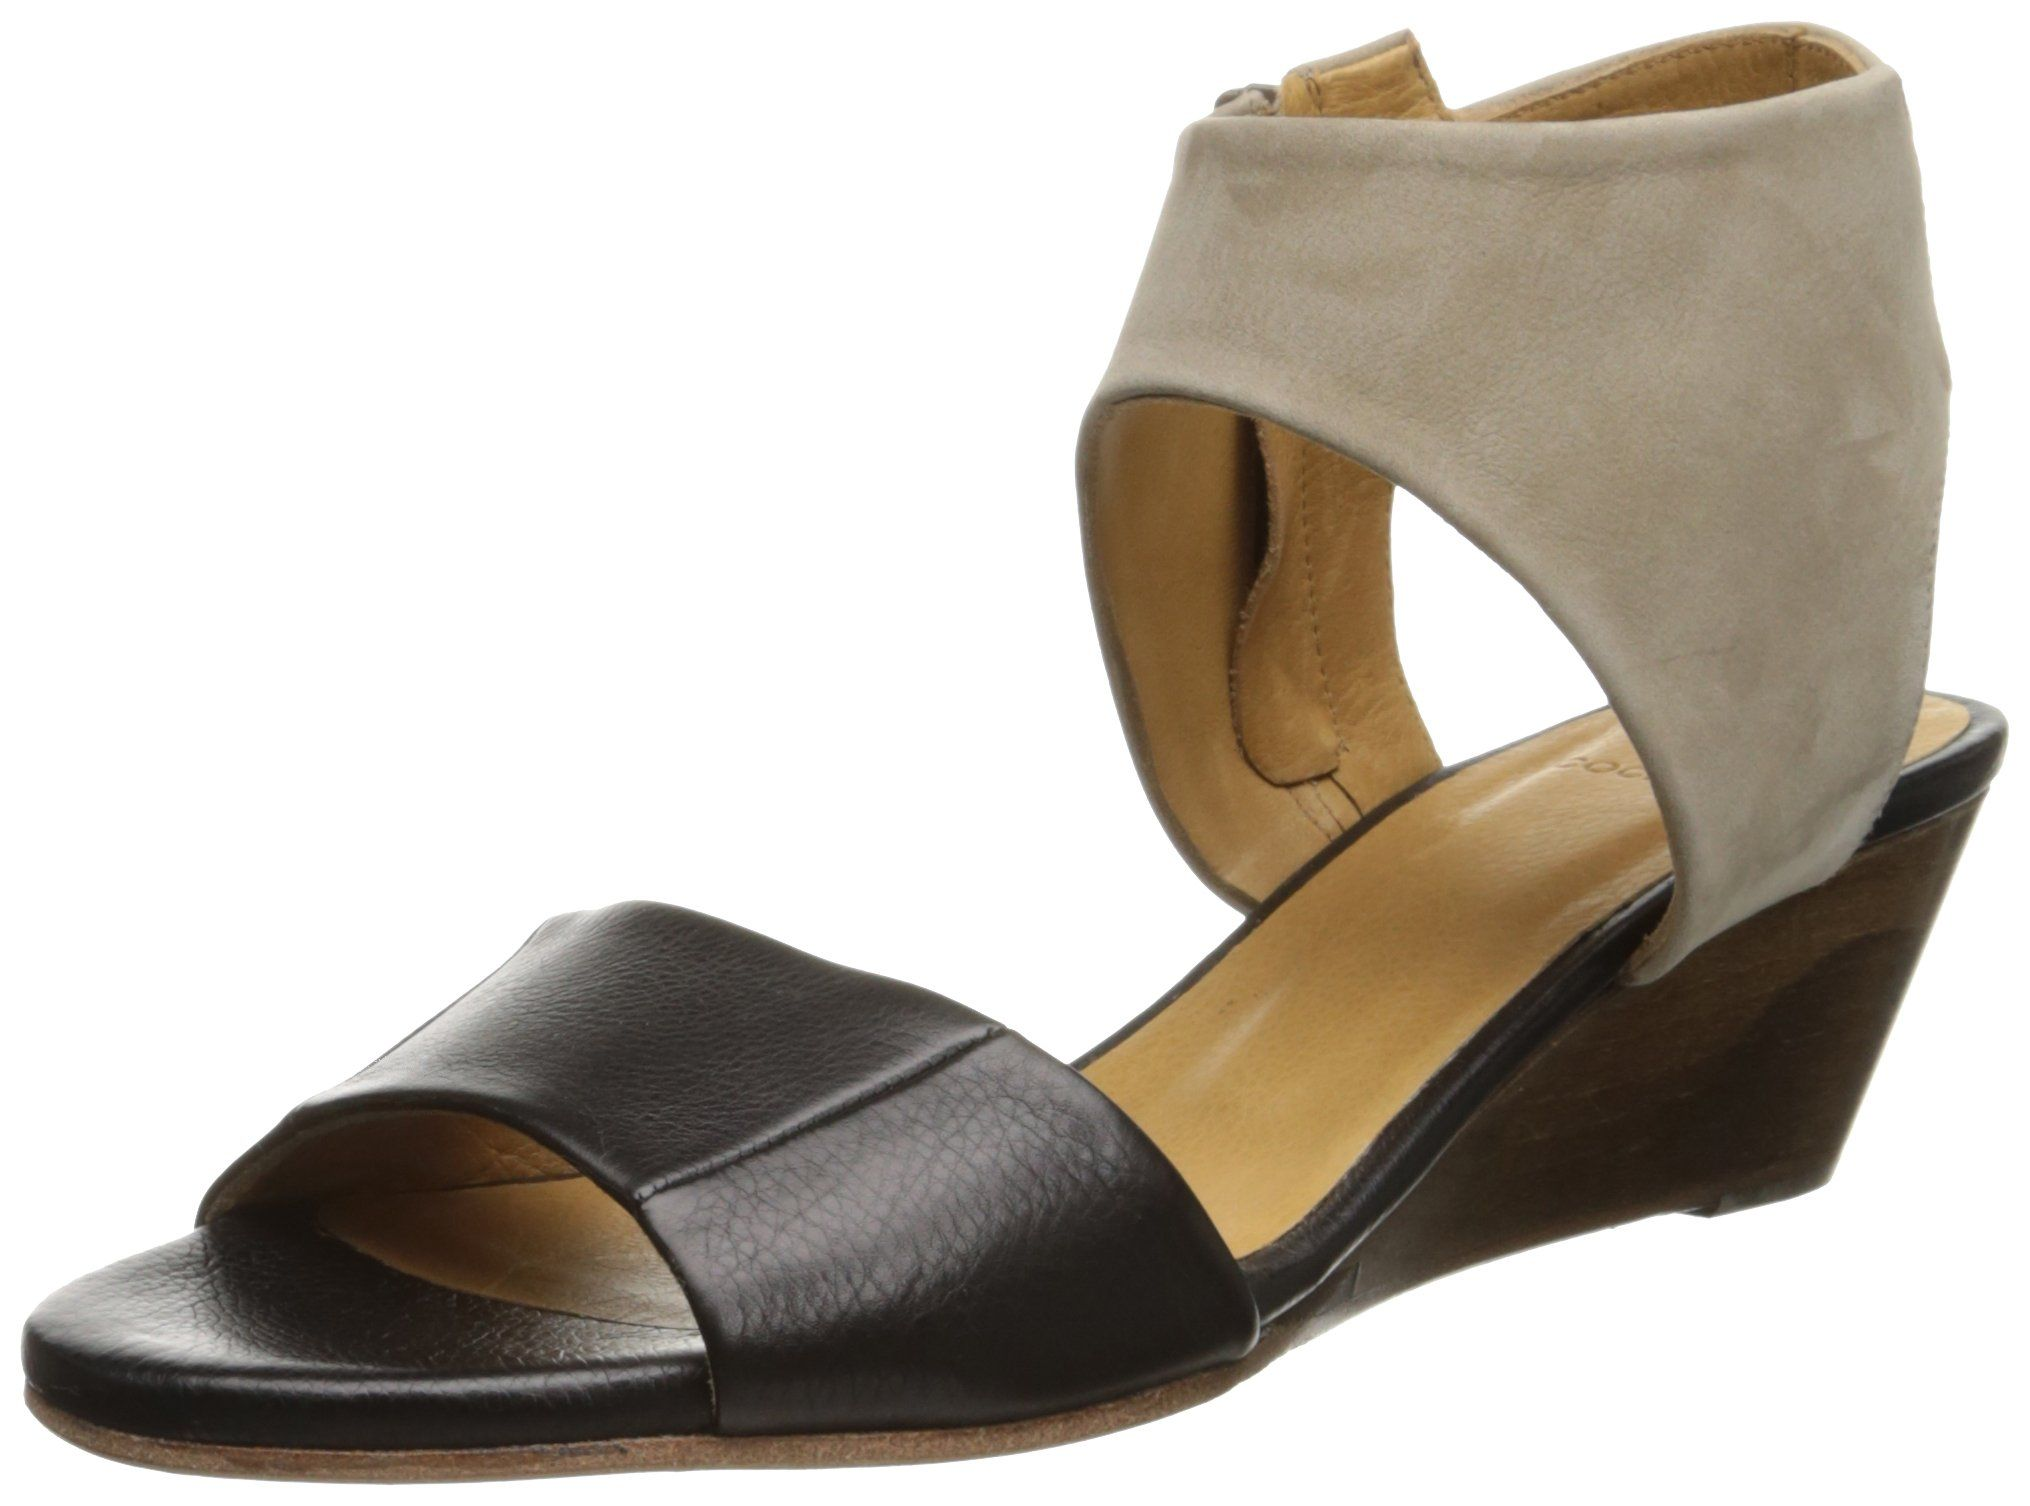 bf0014fc16827 Amazon.com: Coclico Women's Kiss Wedge Sandal: Shoes | shoes | Wedge ...